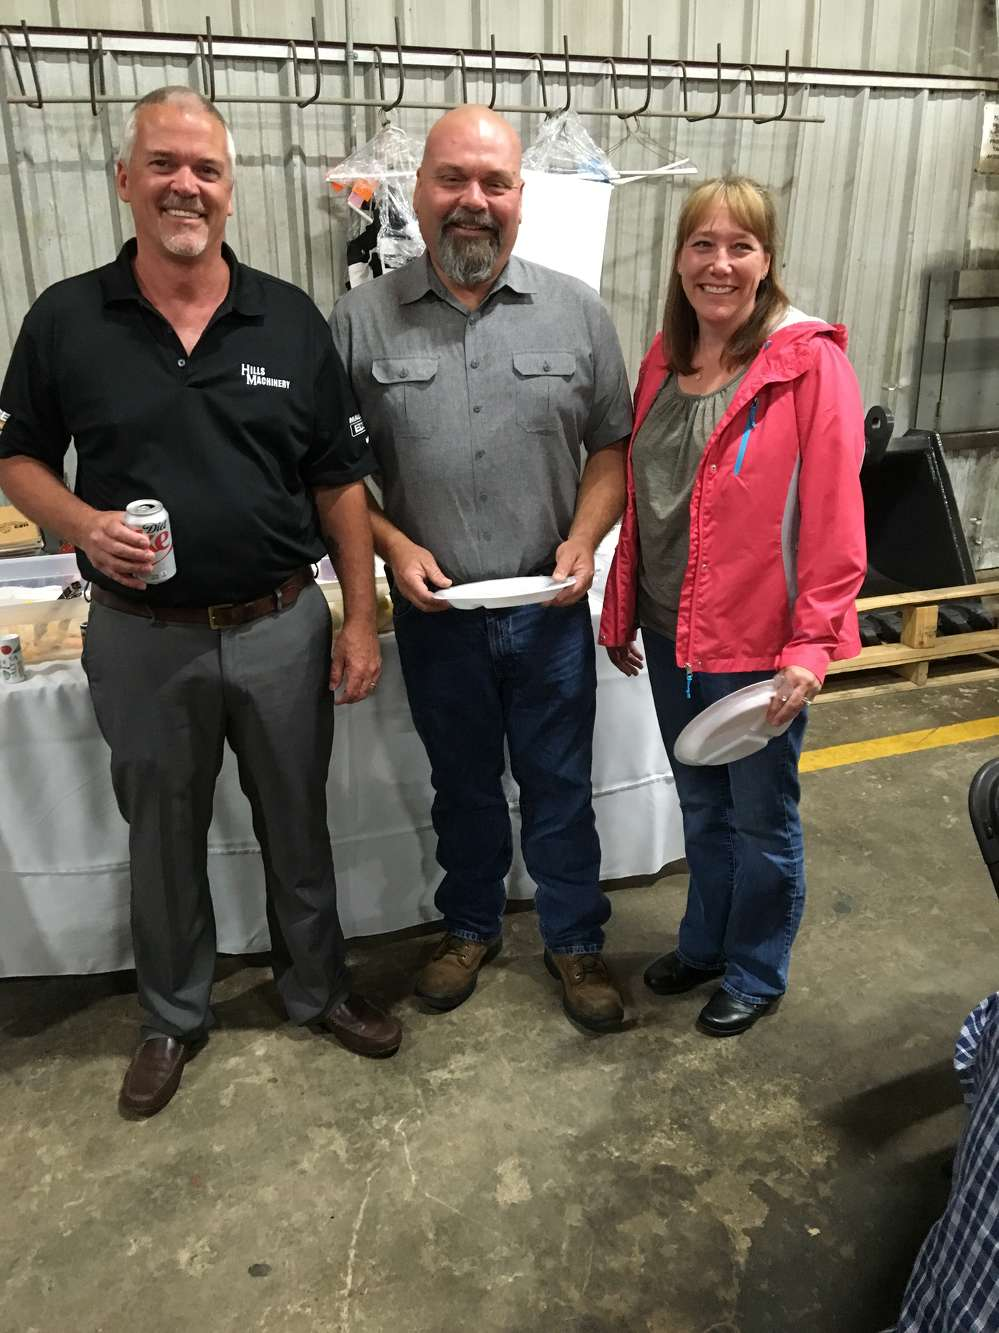 (L-R):Doug Spitzer, Hills Machinery, welcomes Billy Wray of Lane Construction in Charlotte and Lori Wray of Sugar Creek Construction.